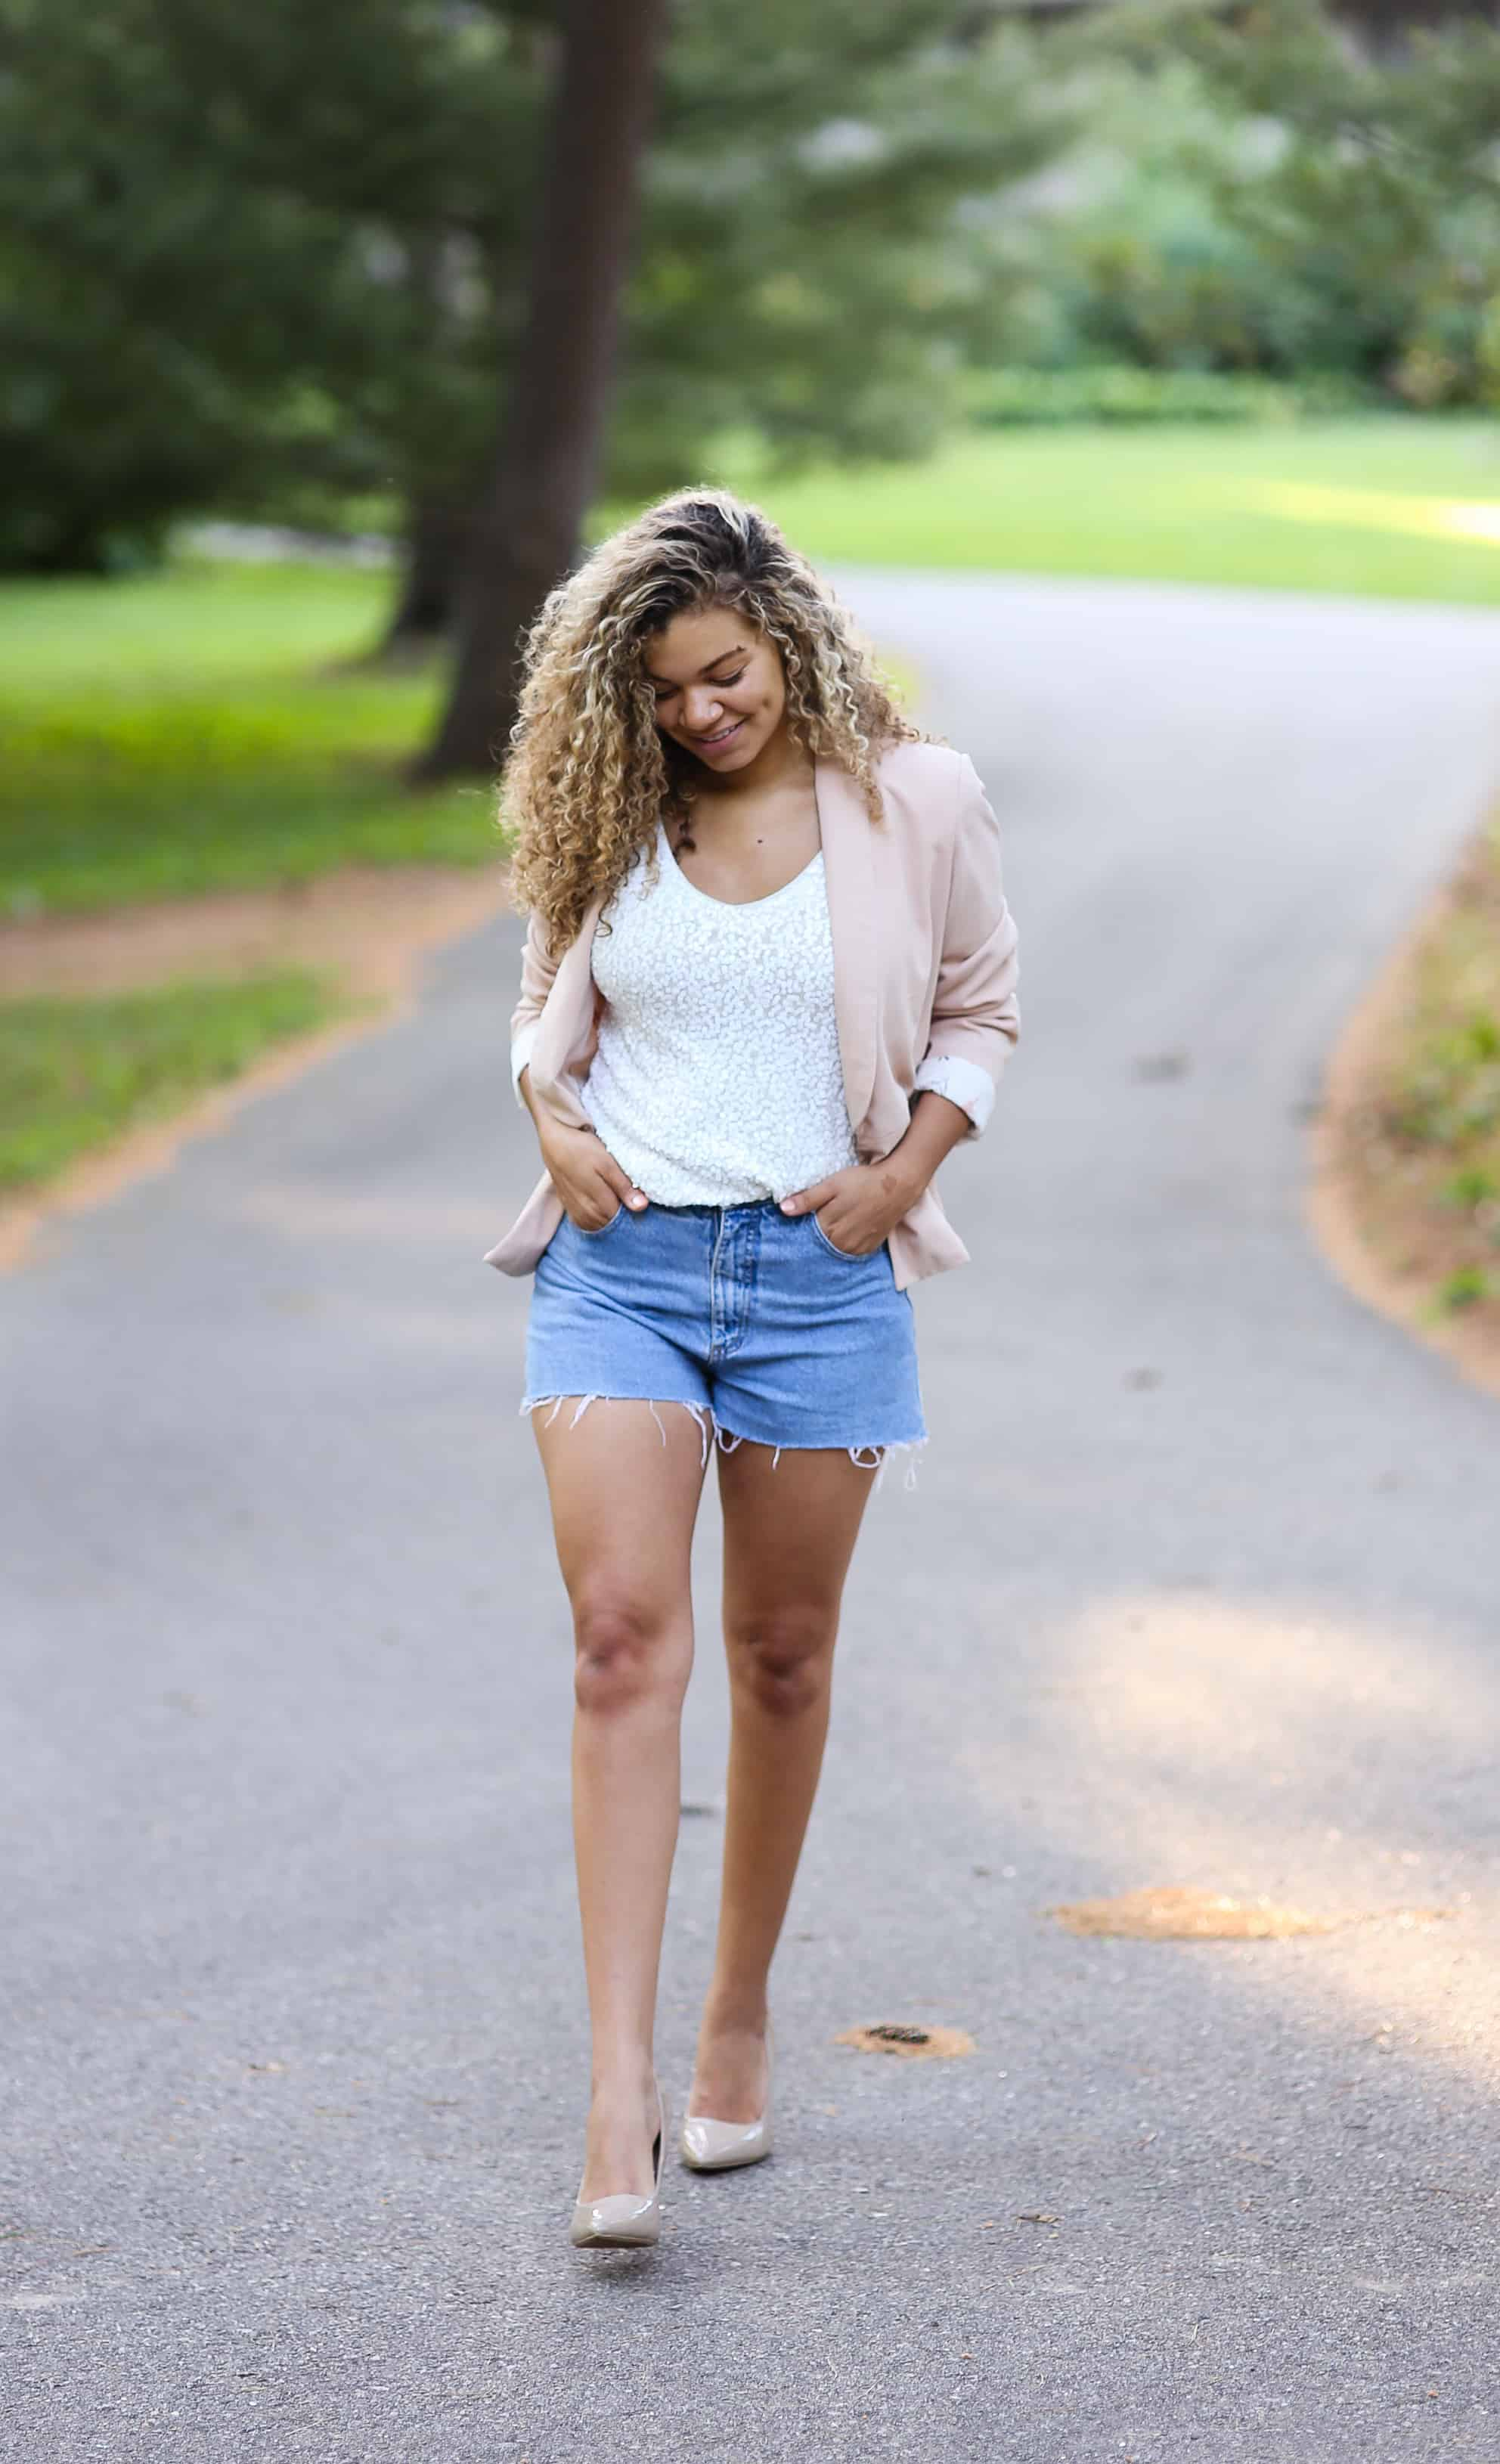 e569271b1c7 6 Ways to Wear Your Denim Shorts This Summer - My Chic Obsession